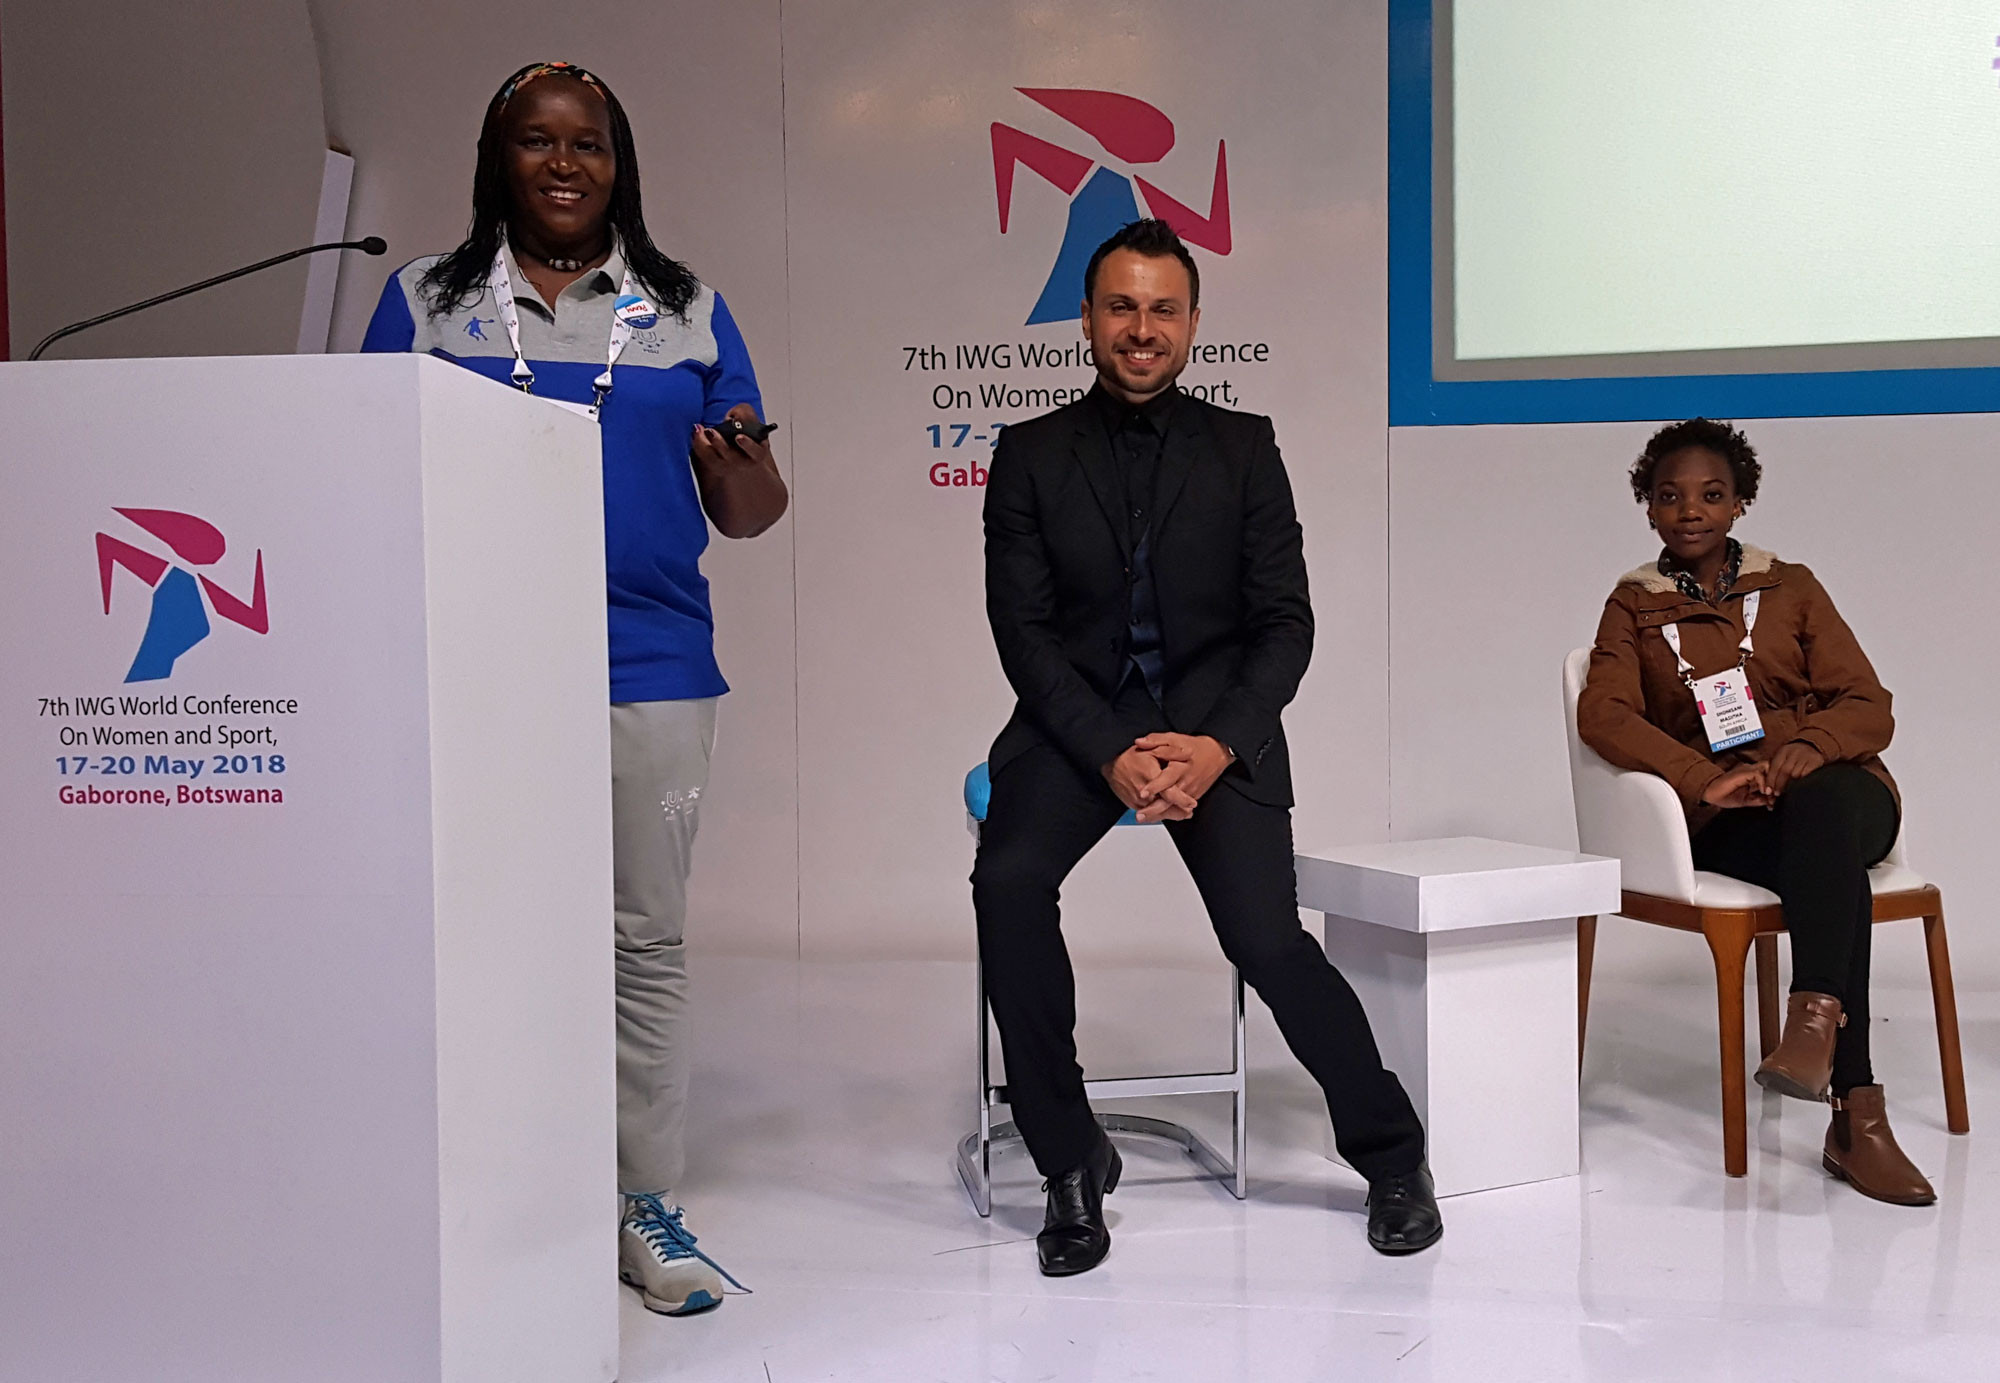 A global conference promoting women in sport was held last month in Botswana ©FISU